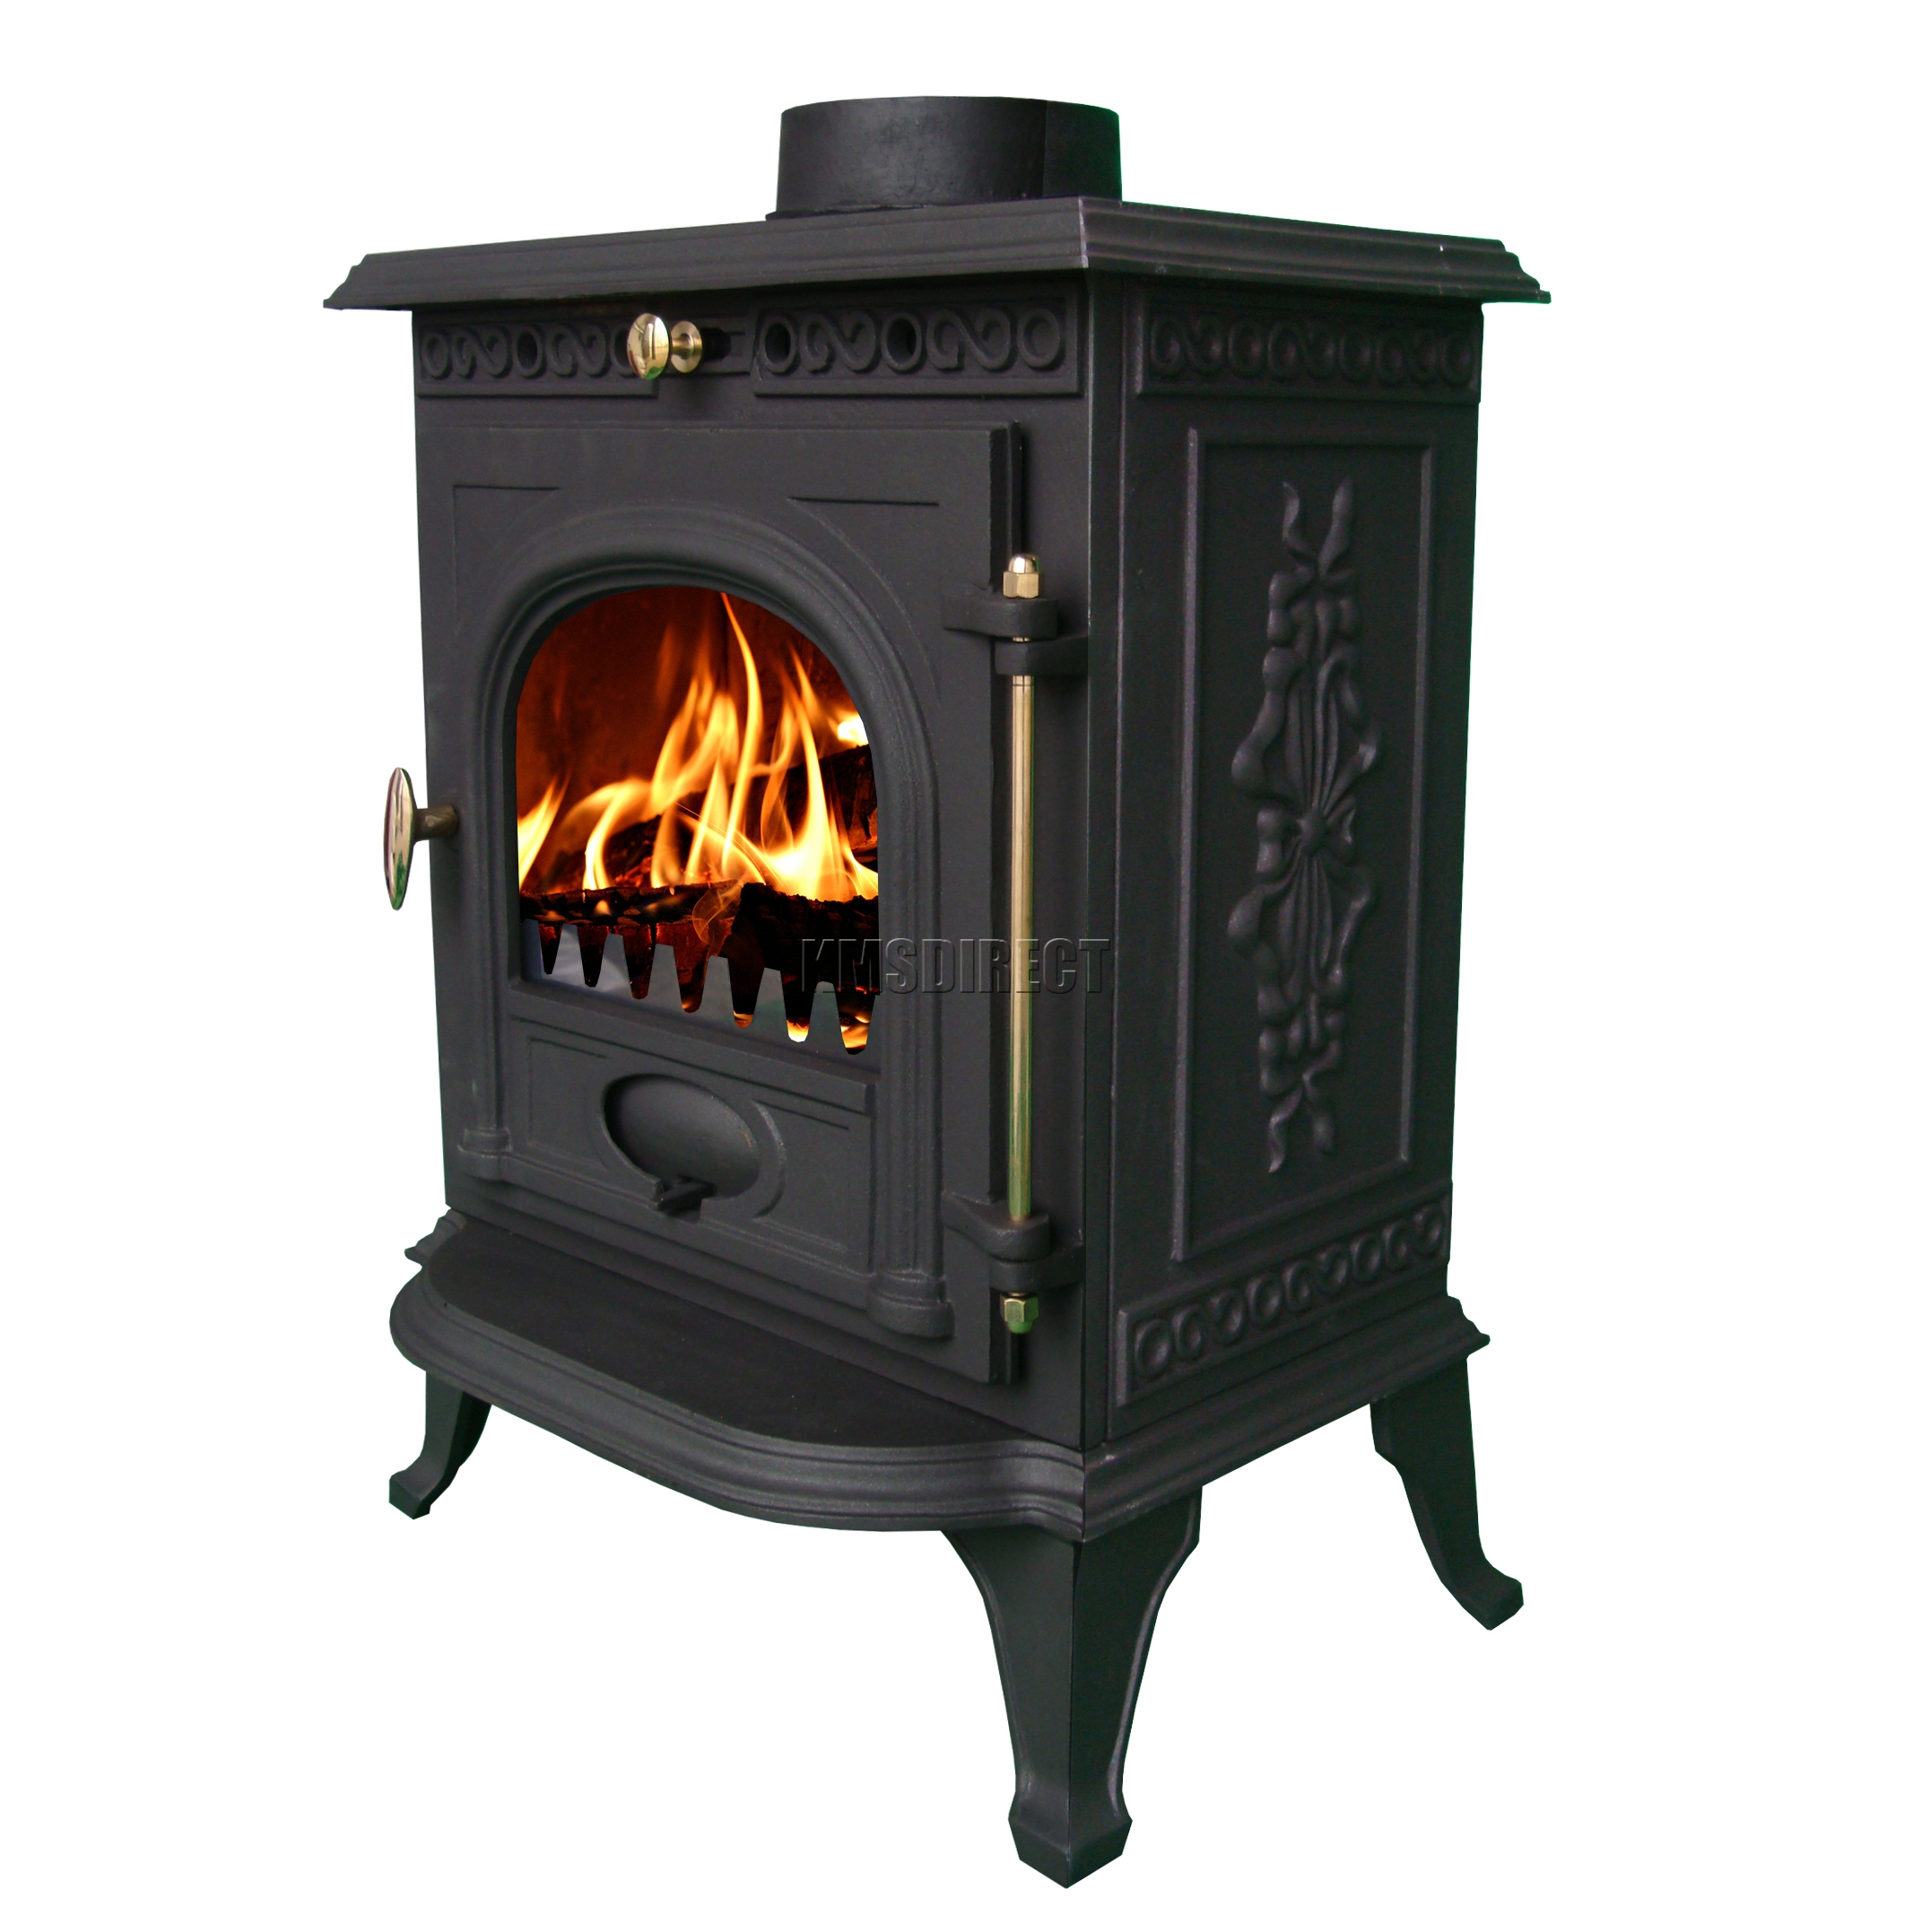 6kw ja014 high efficient cast iron log burner multifuel for Small efficient wood stoves